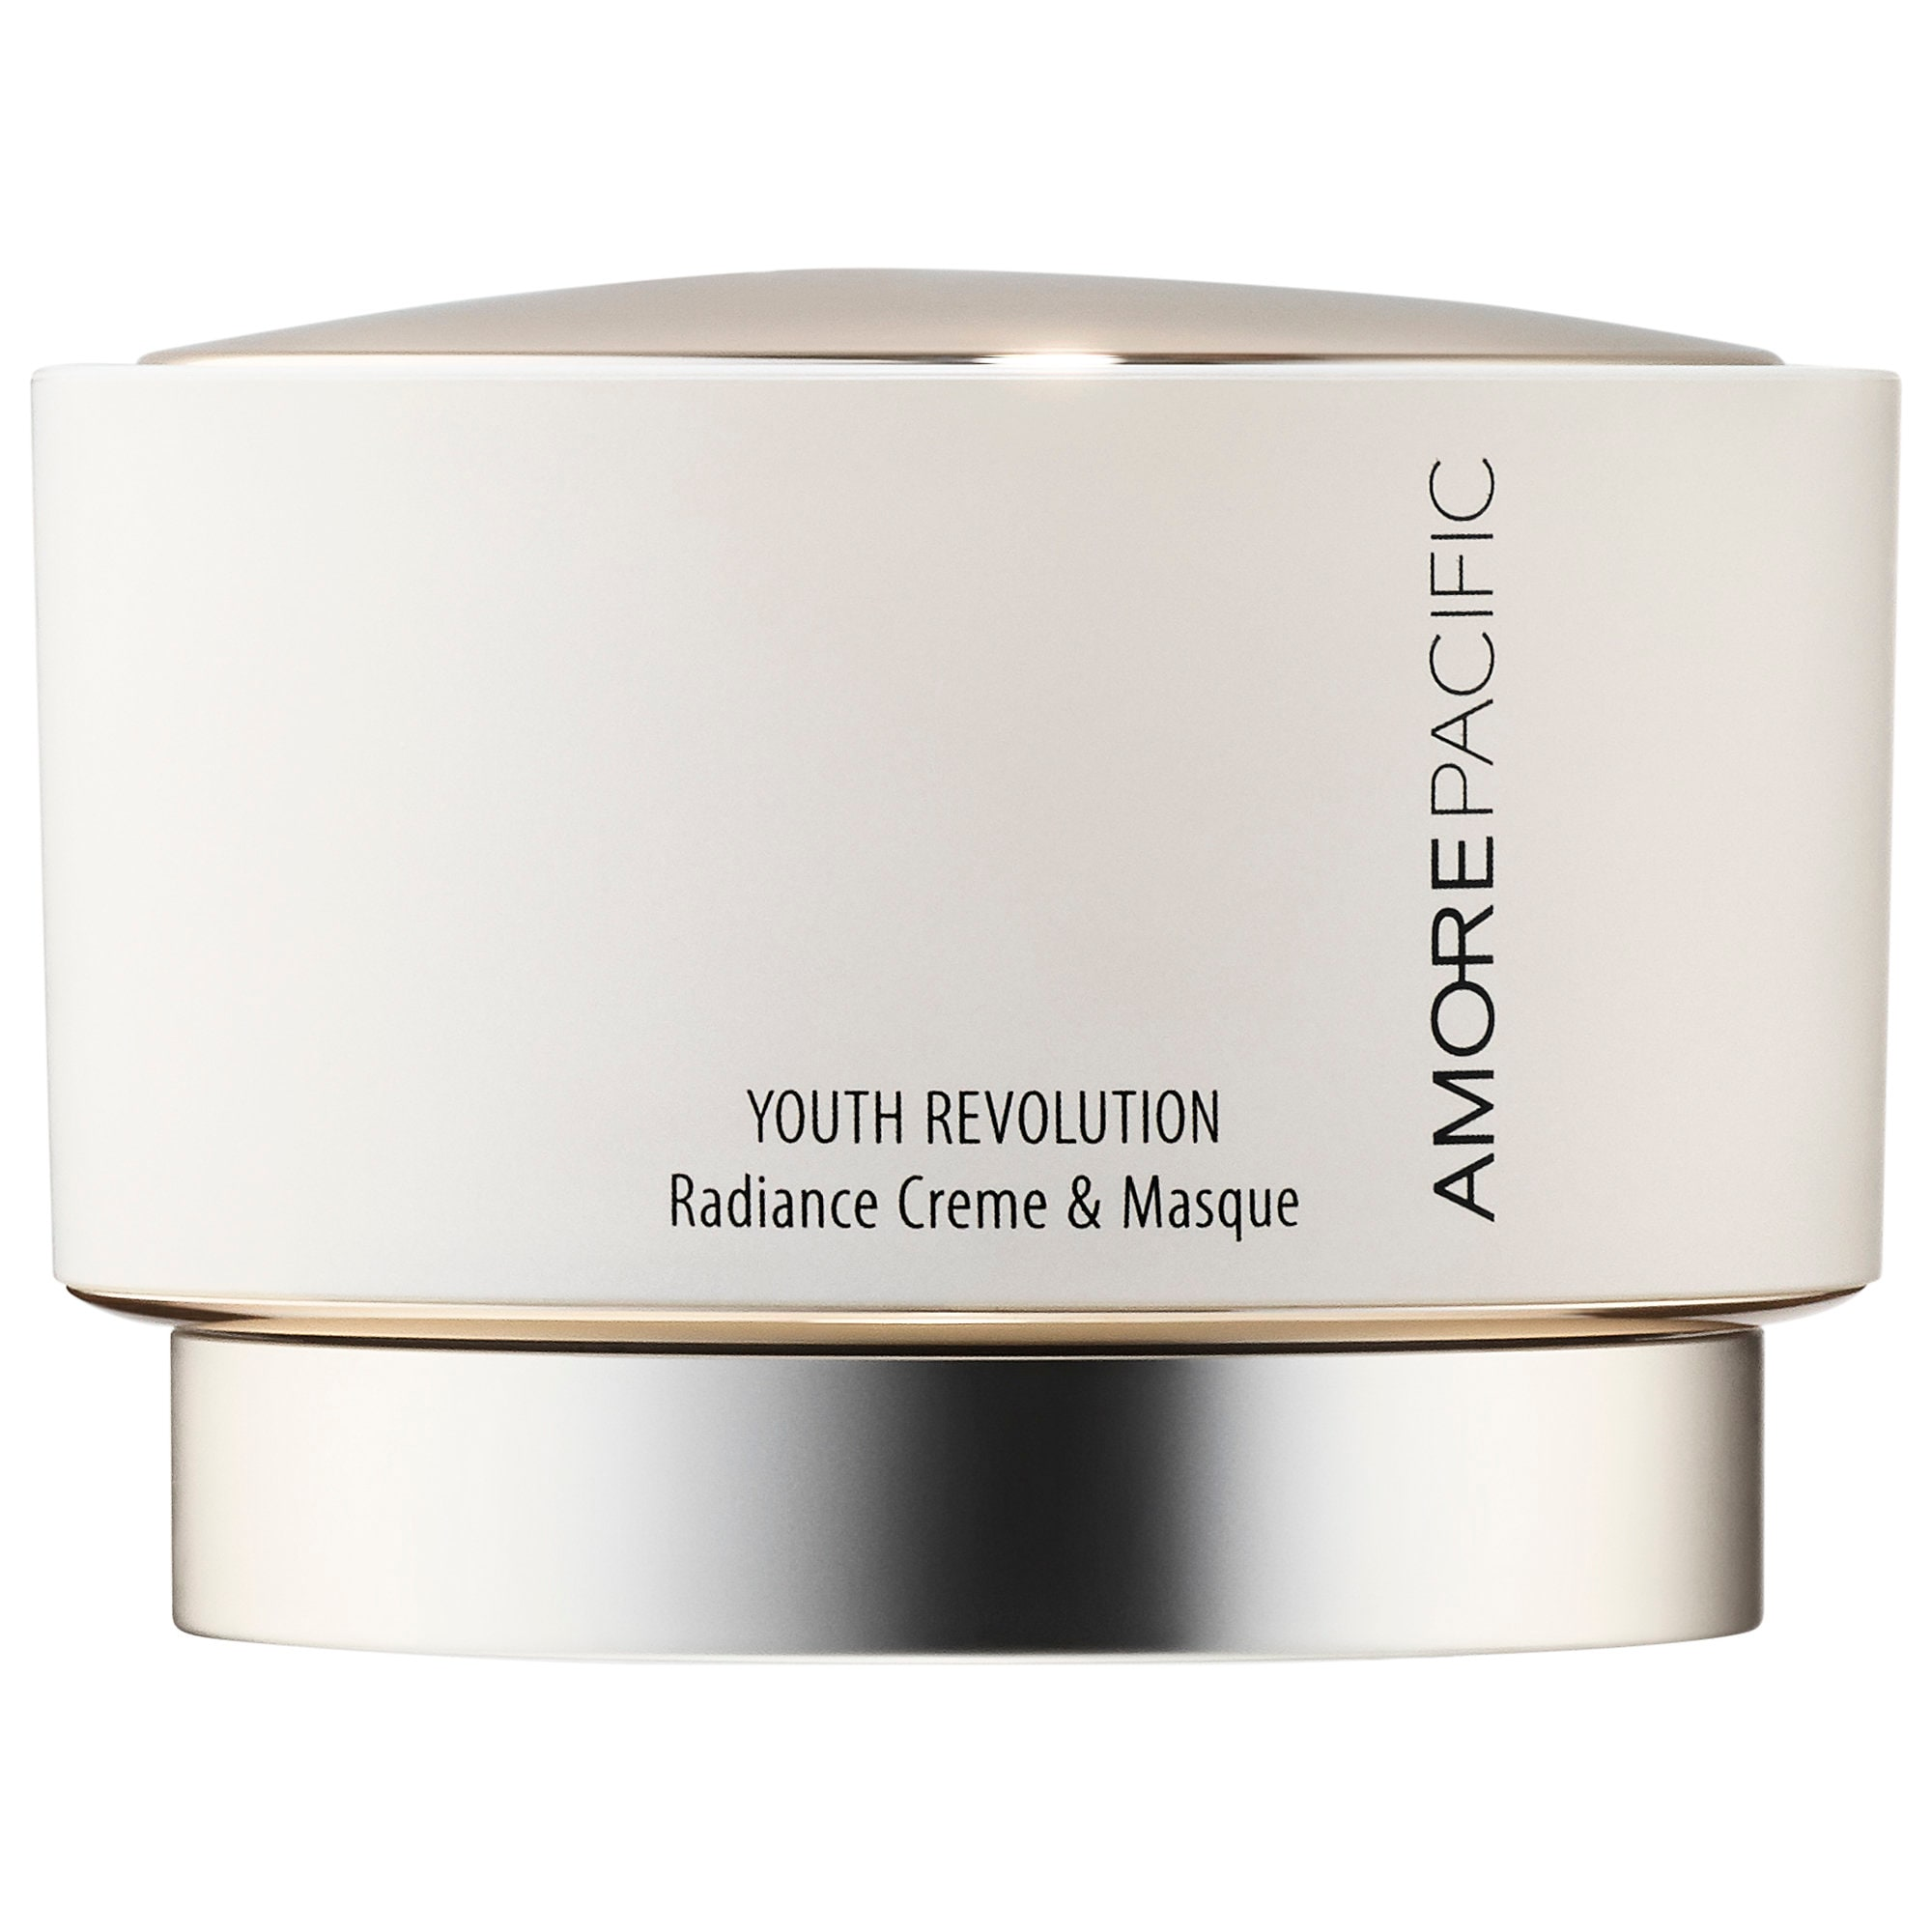 Amore Pacific - Youth Revolution Radiance Crème & Masque